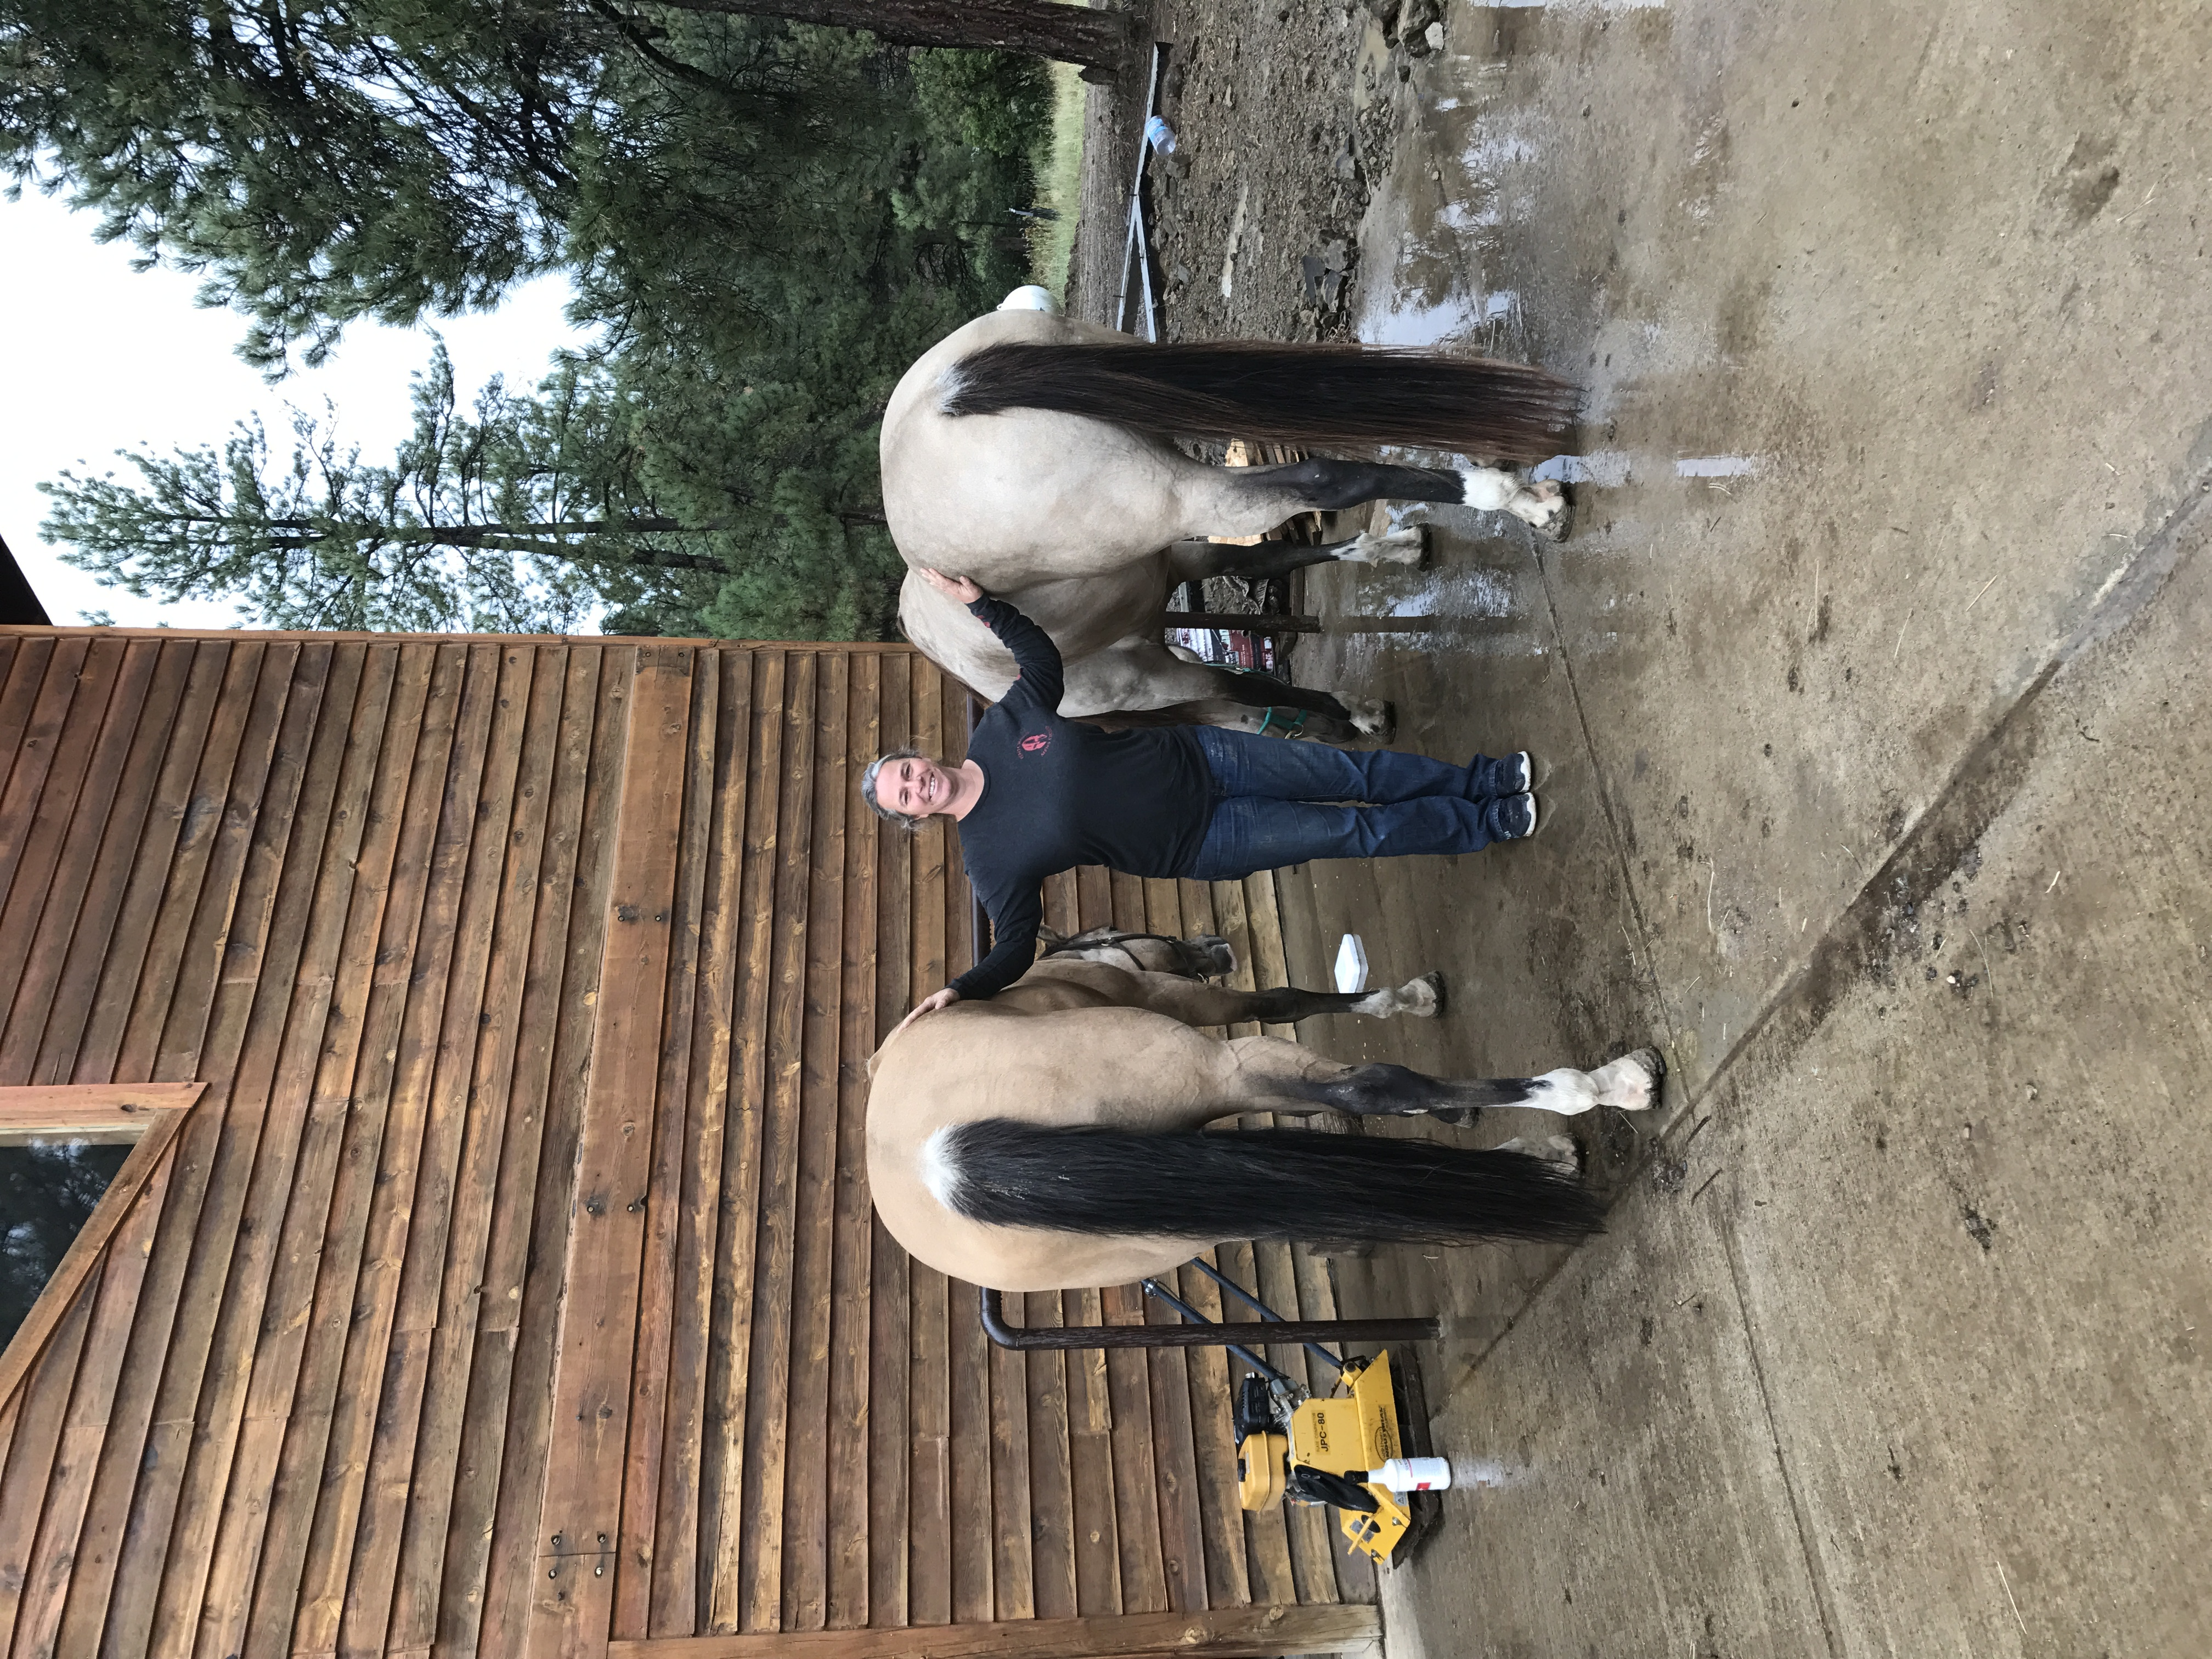 Owner Kelly Gabbard with horses